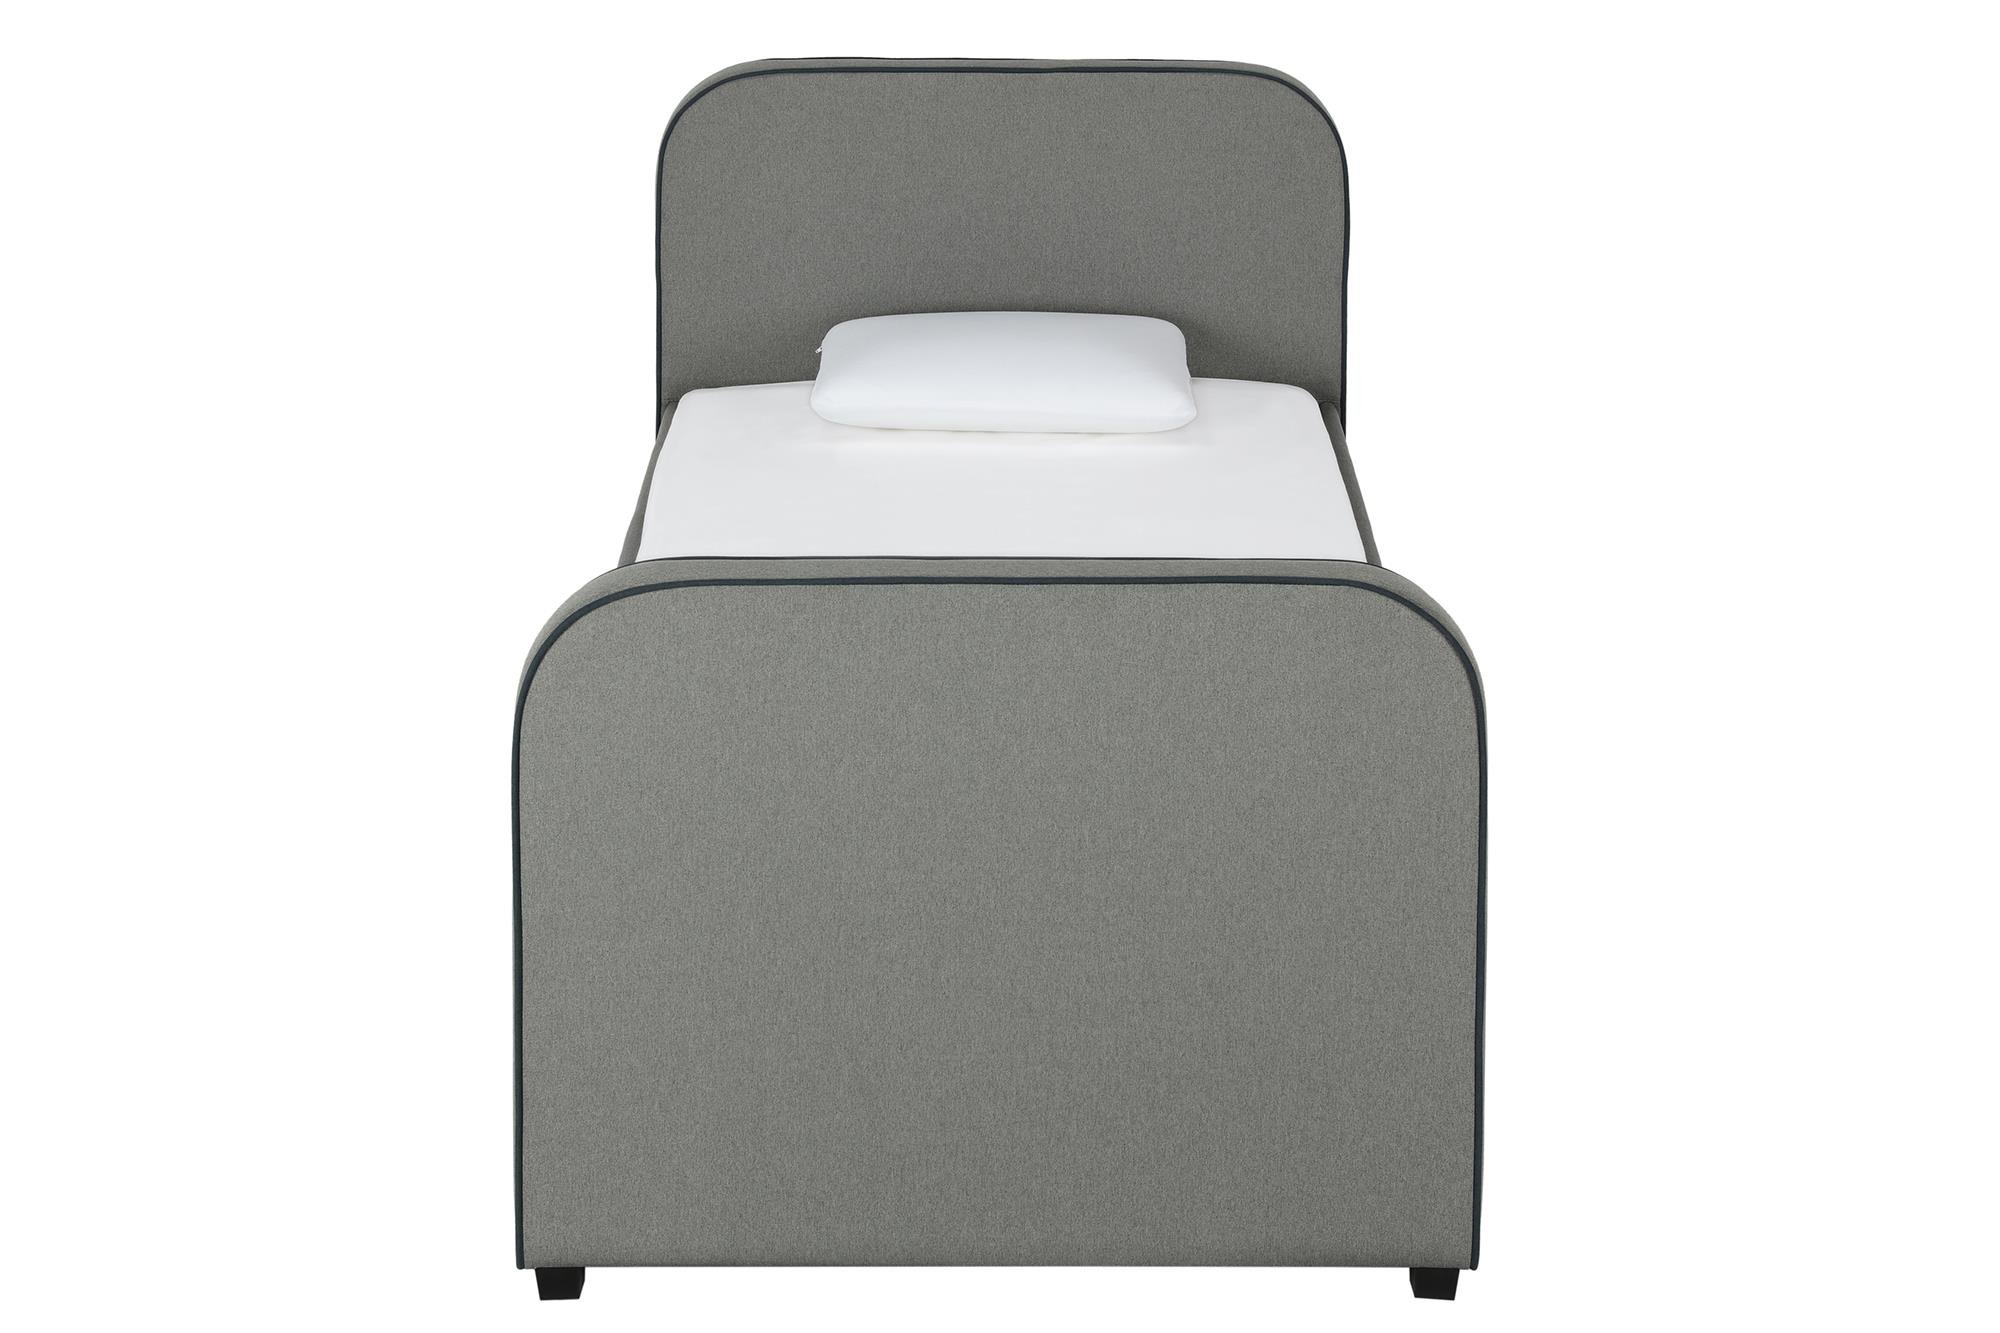 DHP Jesse Twin Kids Bed with Trundle in Gray Linen by DHP (Image #14)